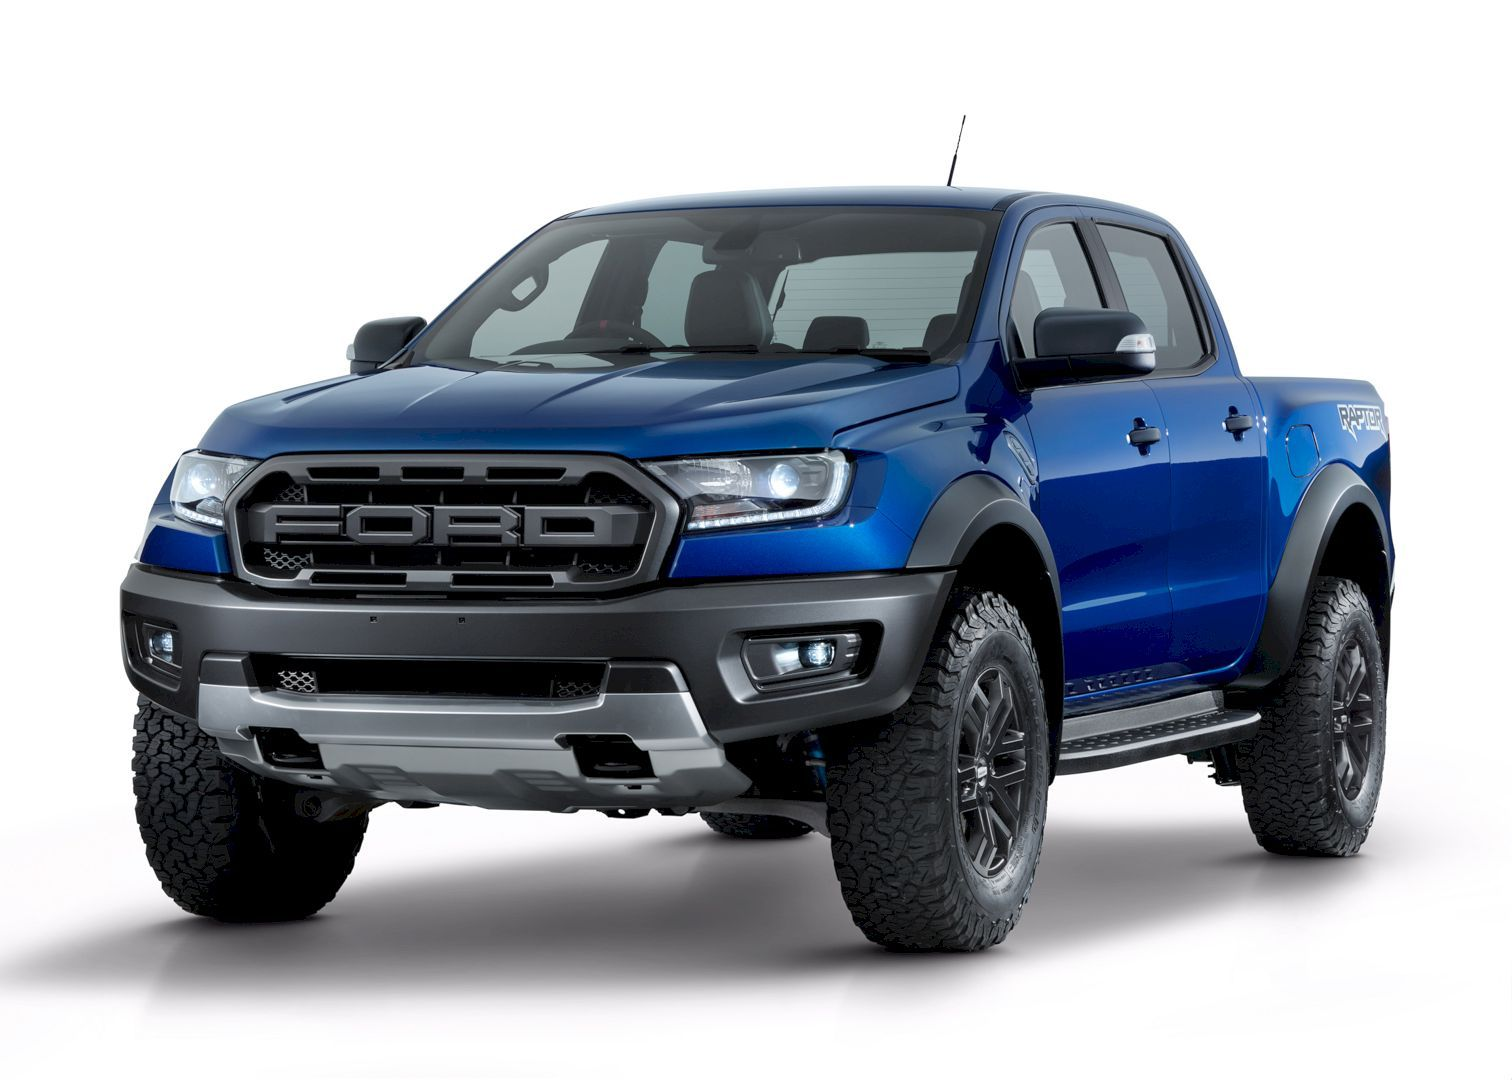 Ford Ranger Raptor Unleash The Beast Ford Ranger Raptor Ford Ranger Wildtrak 2019 Ford Ranger